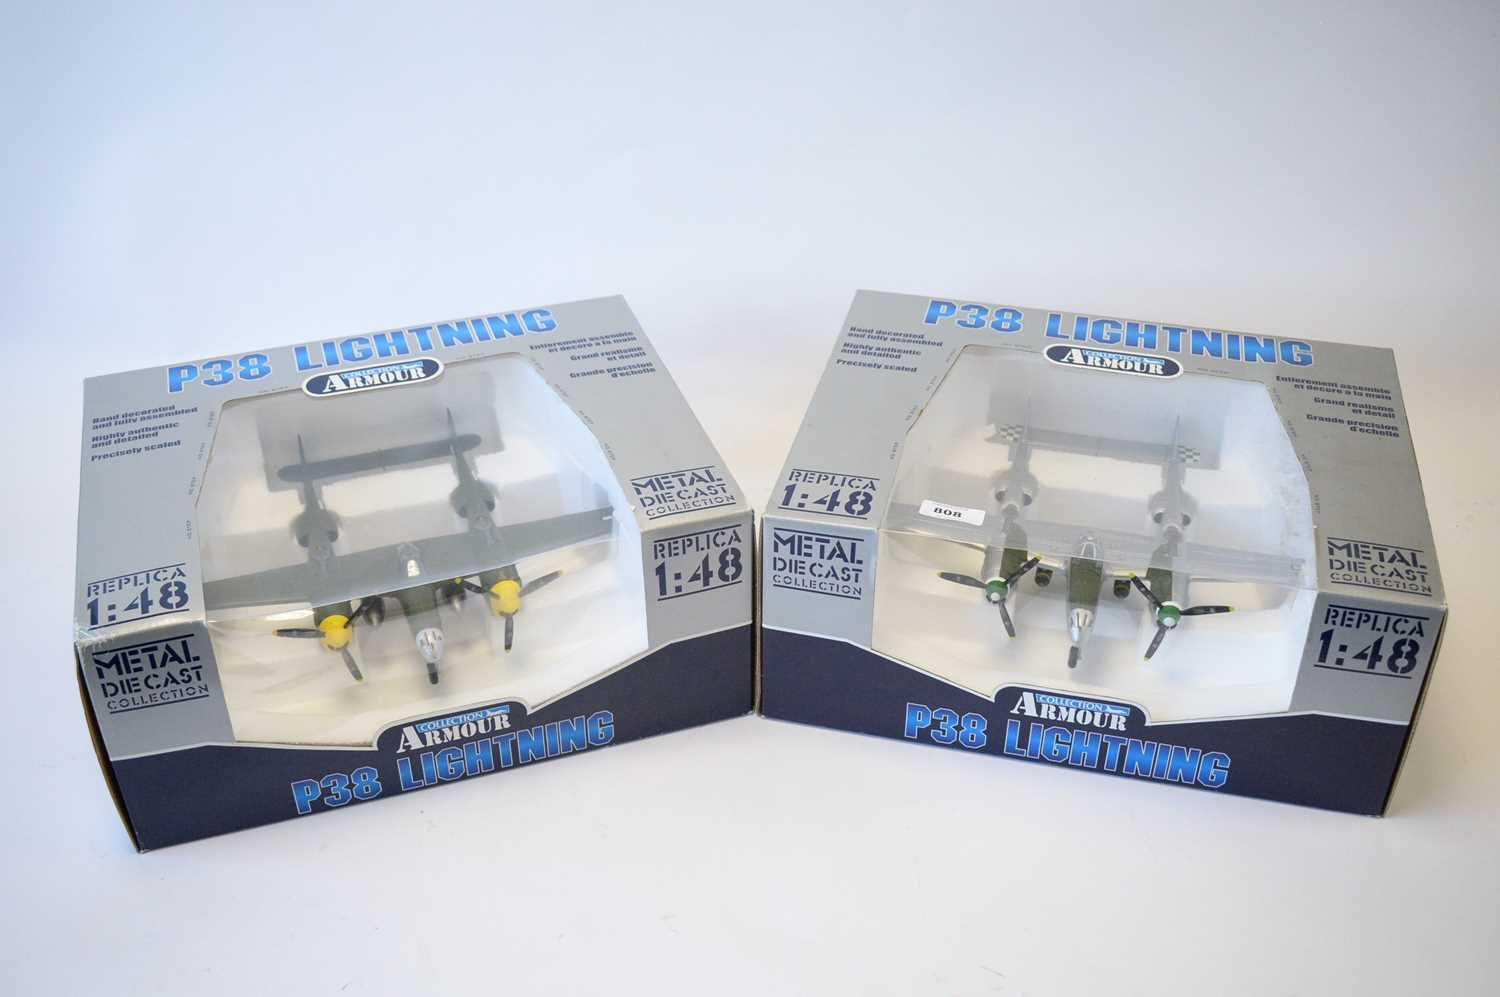 Lot 808 - Collection Armour 1:48 Scale metal diecast aeroplanes - P38 Lightning.